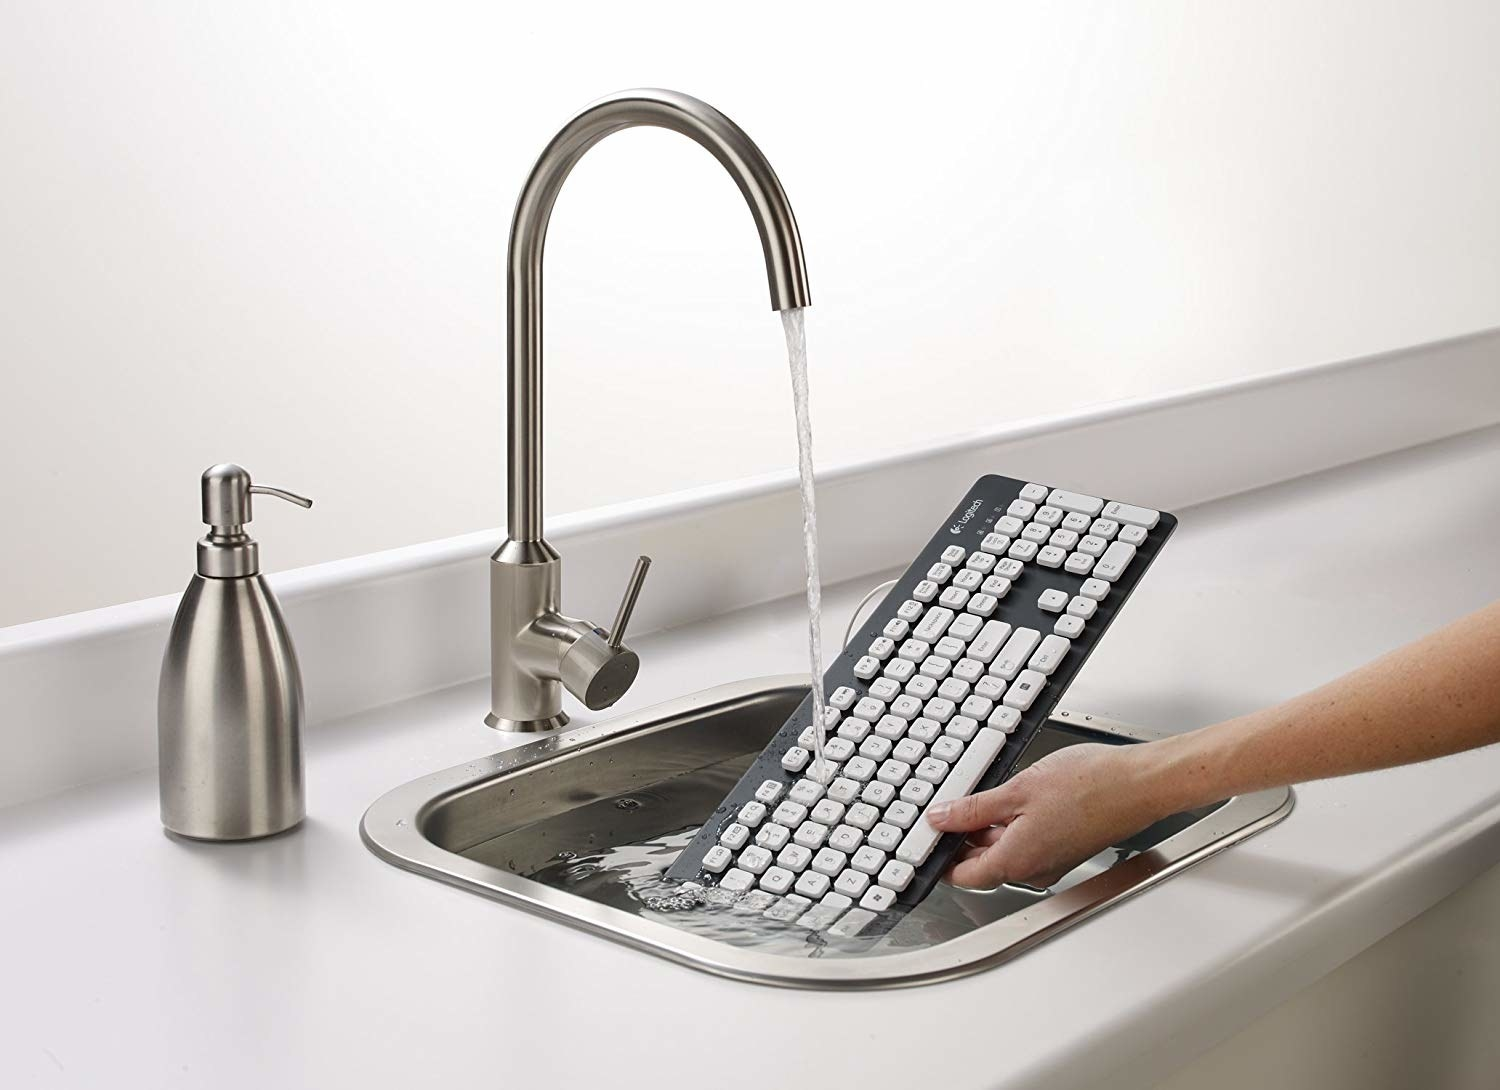 keyboard being hand washed in a sink